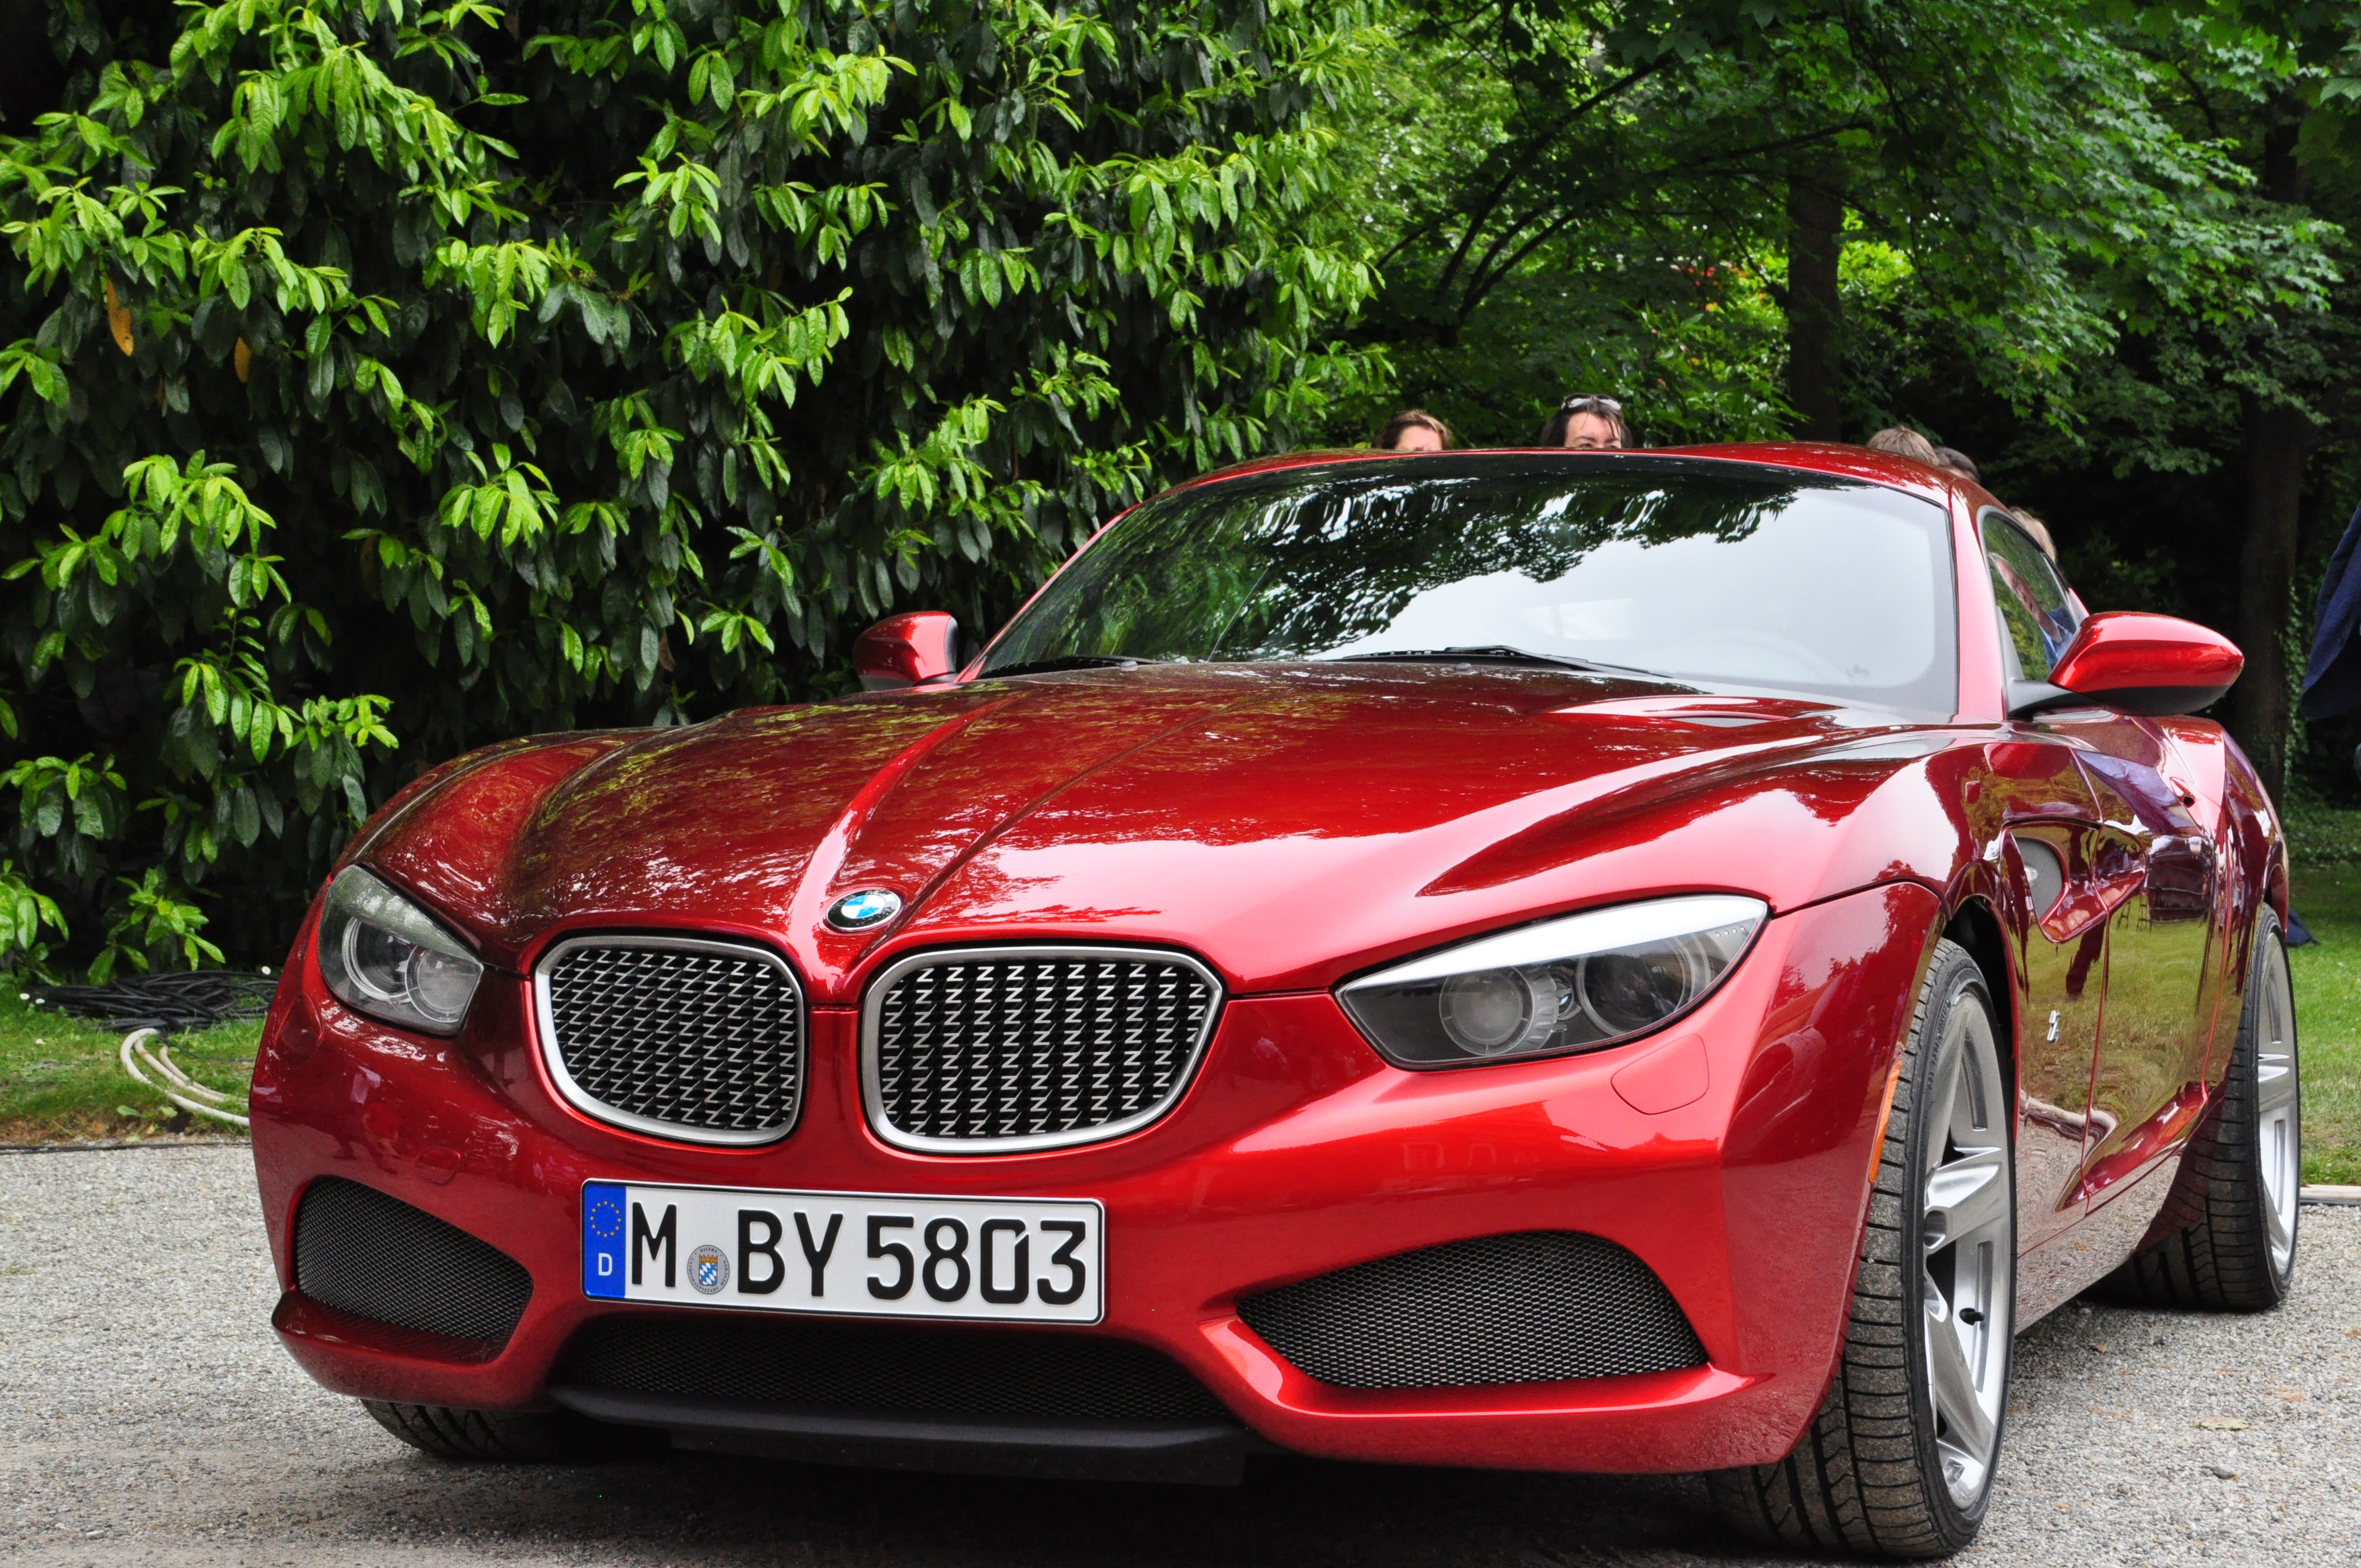 New Bmw Z5 Coupe Seen Out And About